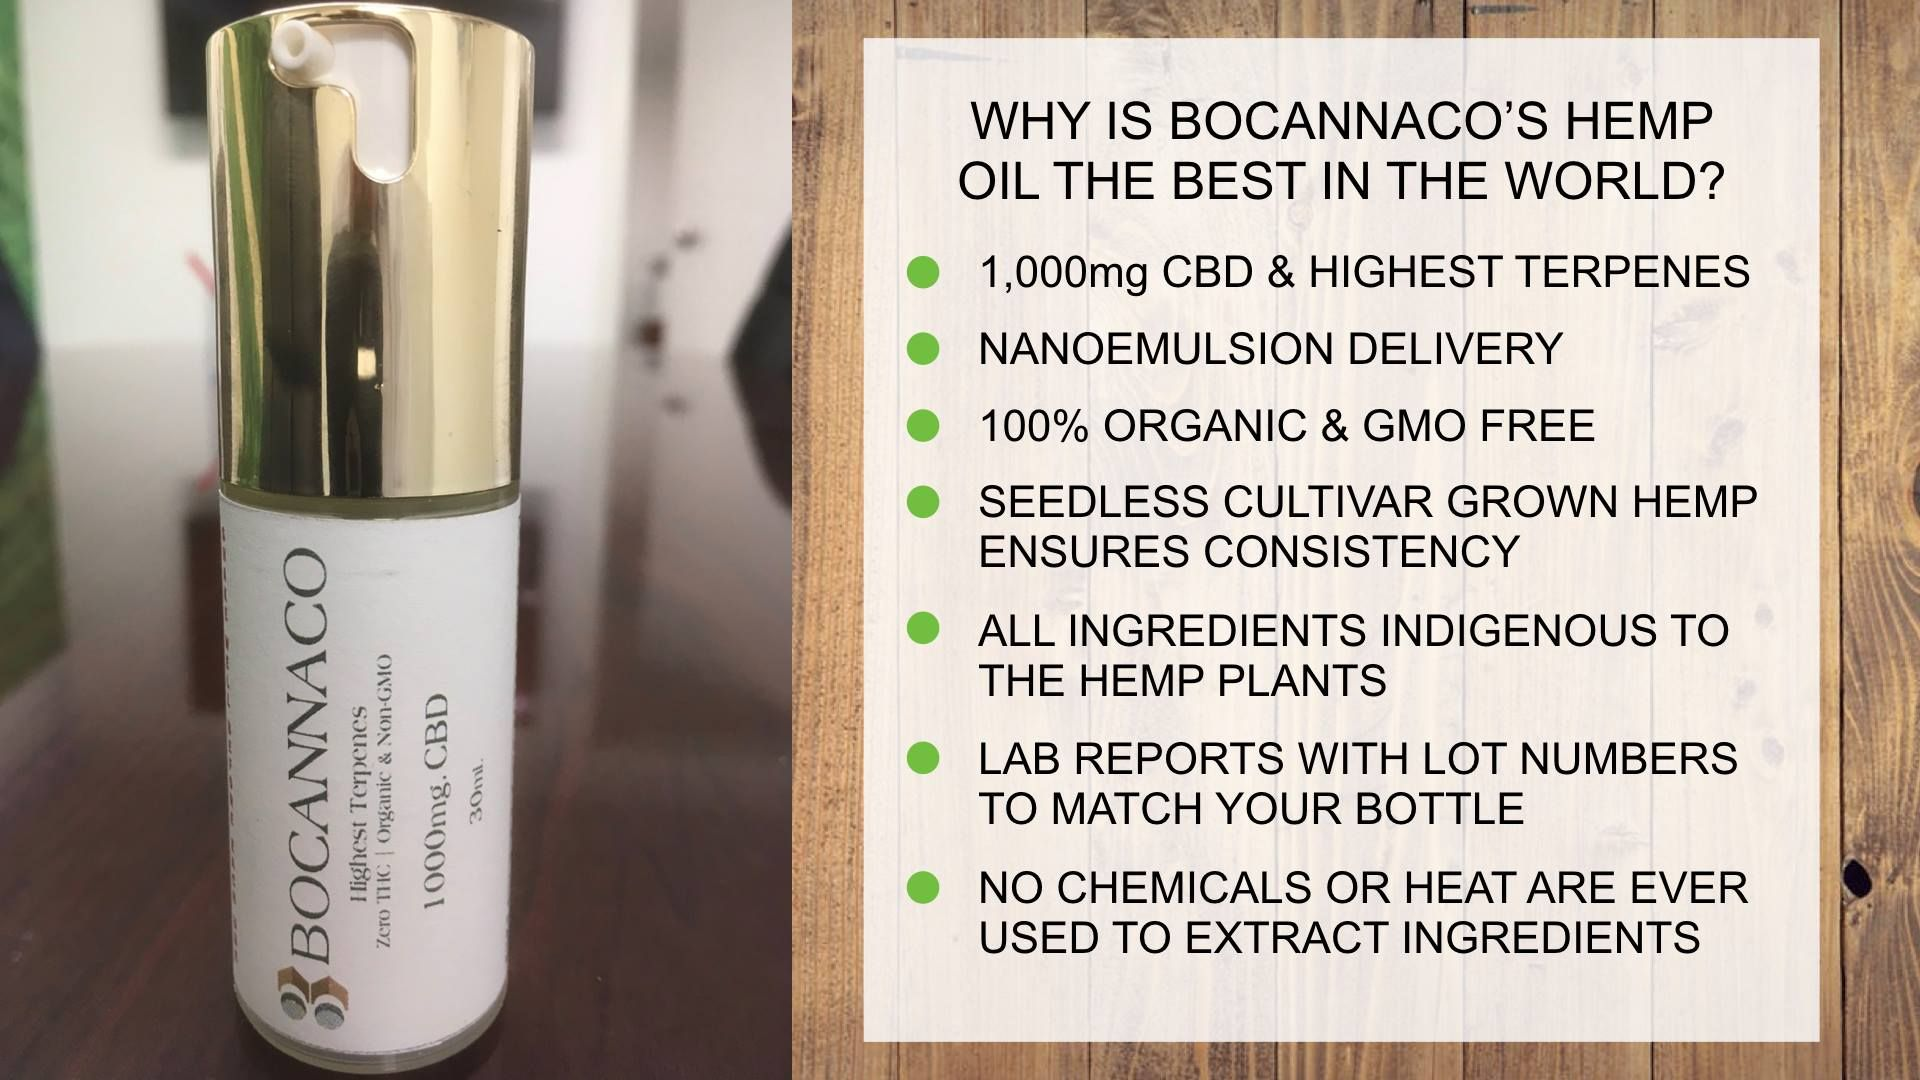 Is Bocanacco a Scam - Product Line